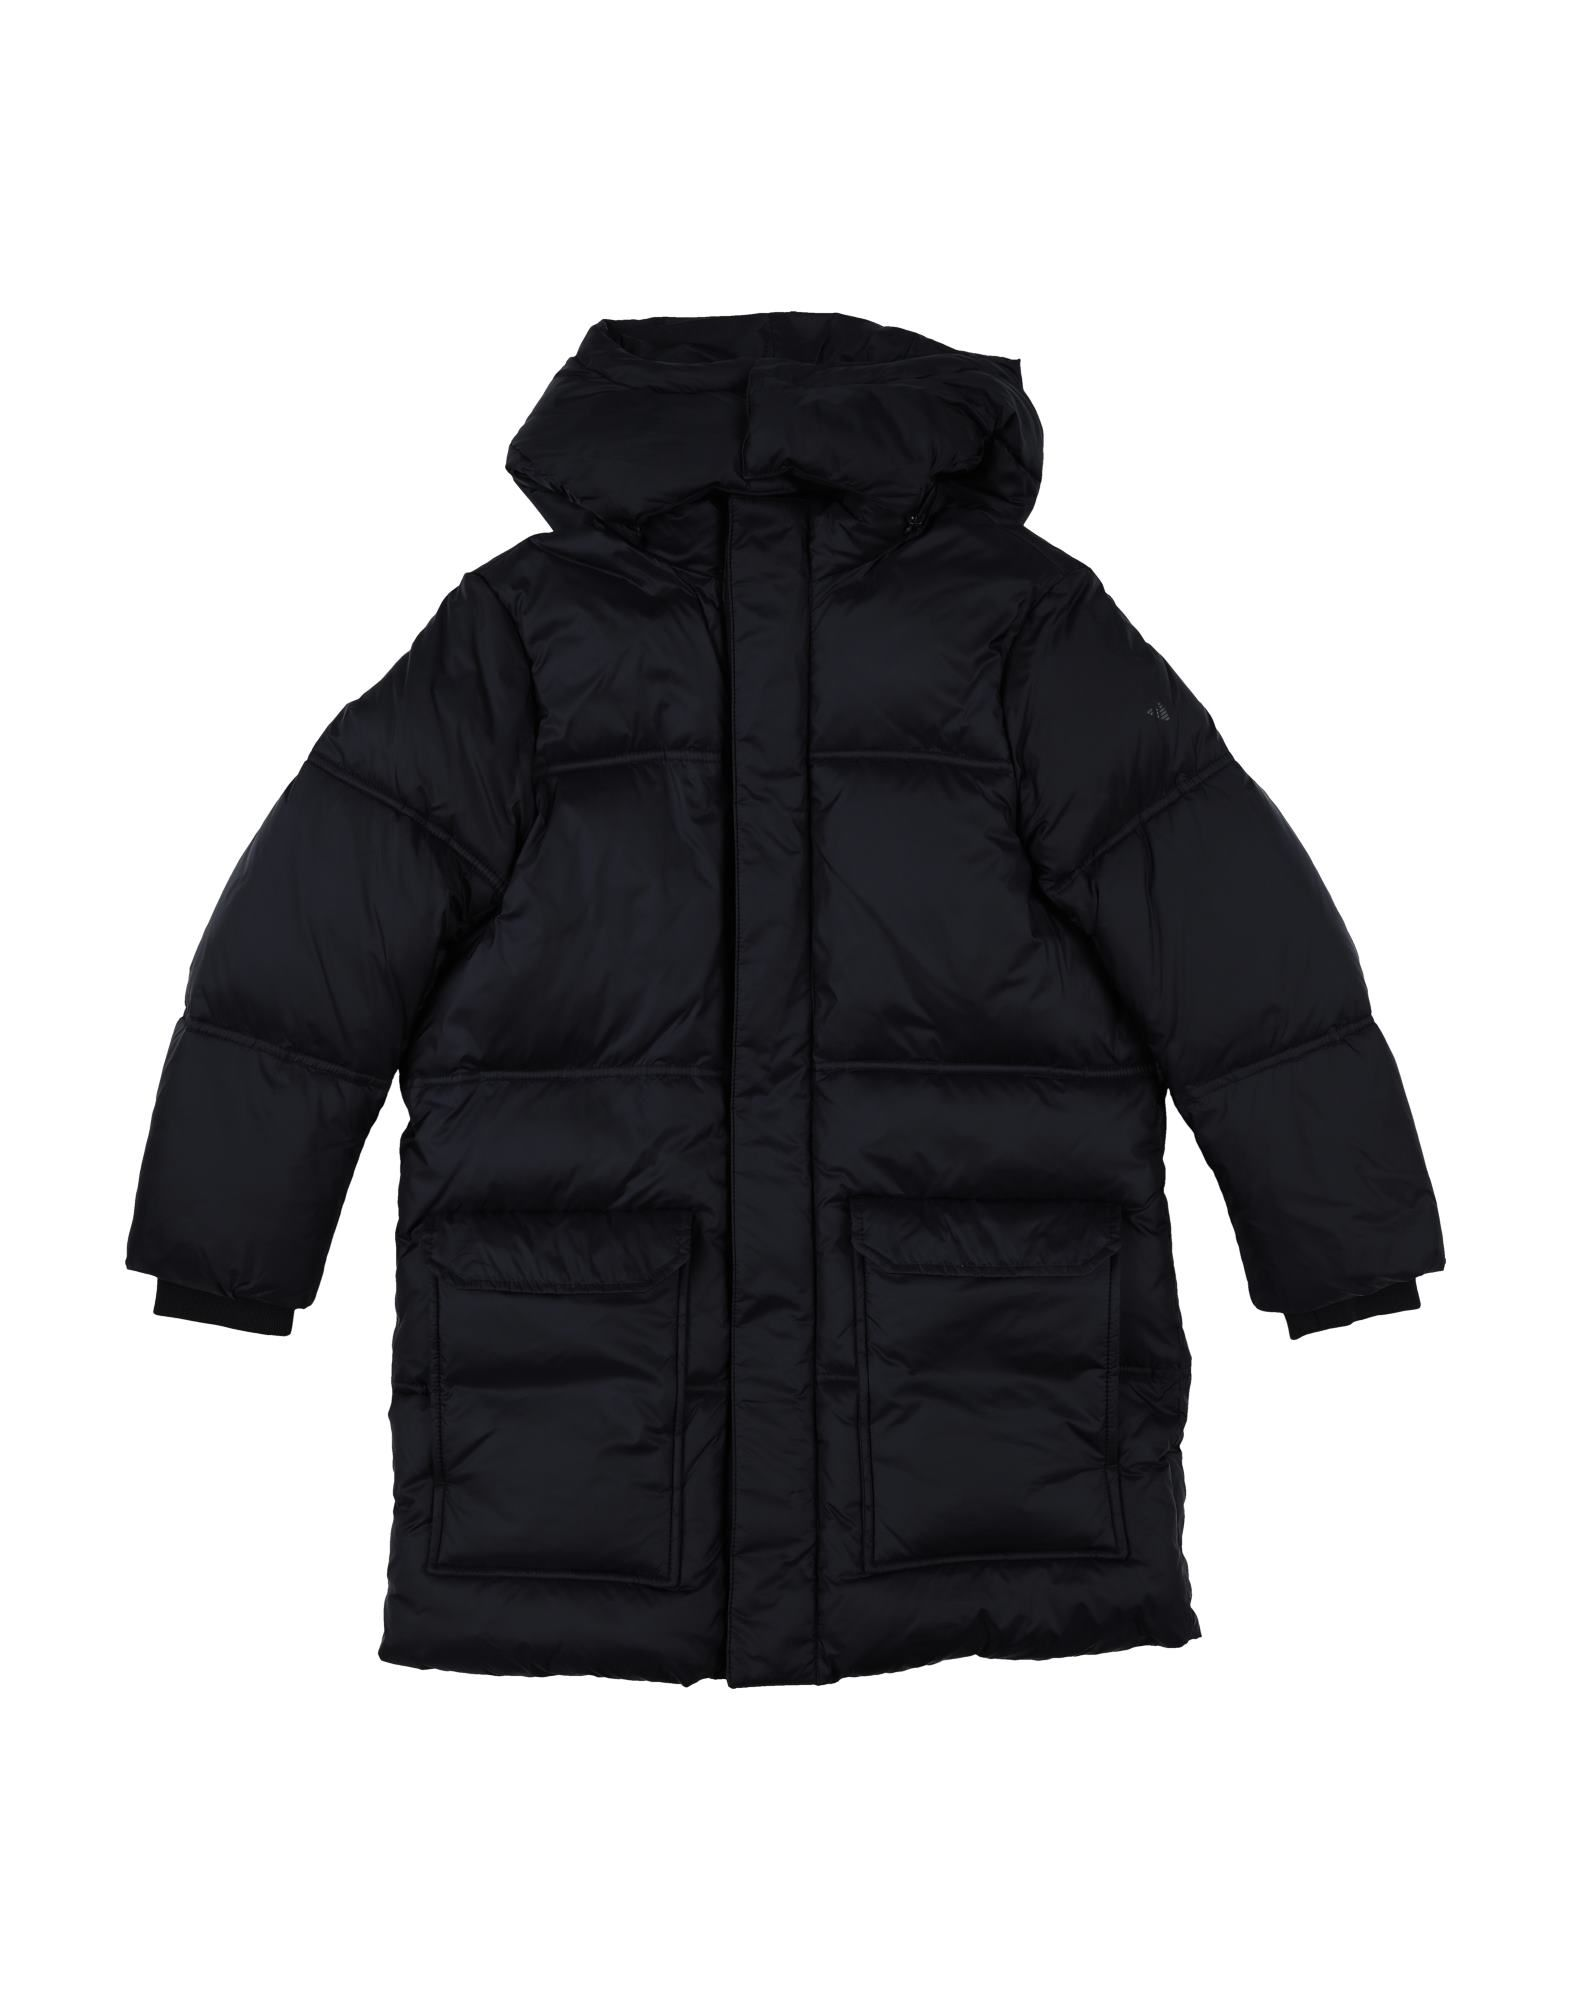 EMPORIO ARMANI Synthetic Down Jackets - Item 41993121